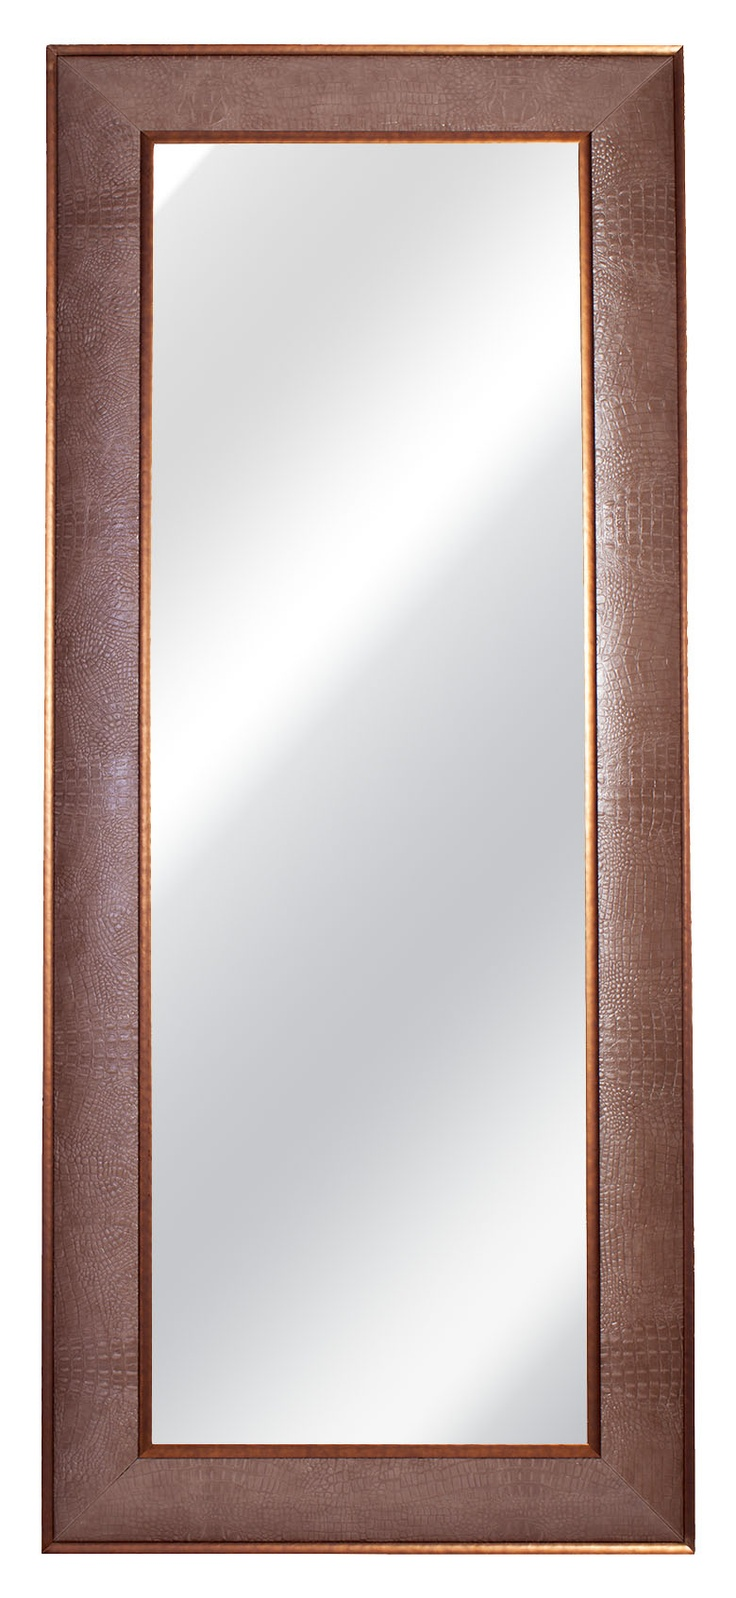 """""""luxury floor mirrors"""" """"designer floor mirrors"""" """"custom made floor mirrors"""" By InStyle-Decor.com Hollywood, for more """"mirror"""" inspirations use our site search box term """"mirror"""" luxury floor mirrors, designer floor mirrors, custom made floor mirrors, custom floor mirrors, high quality floor mirrors, high end floor mirrors, modern floor mirrors, contemporary floor mirrors, luxury furniture, luxury furniture brands, luxury furniture stores, luxury lighting, designer furniture, home decor,"""